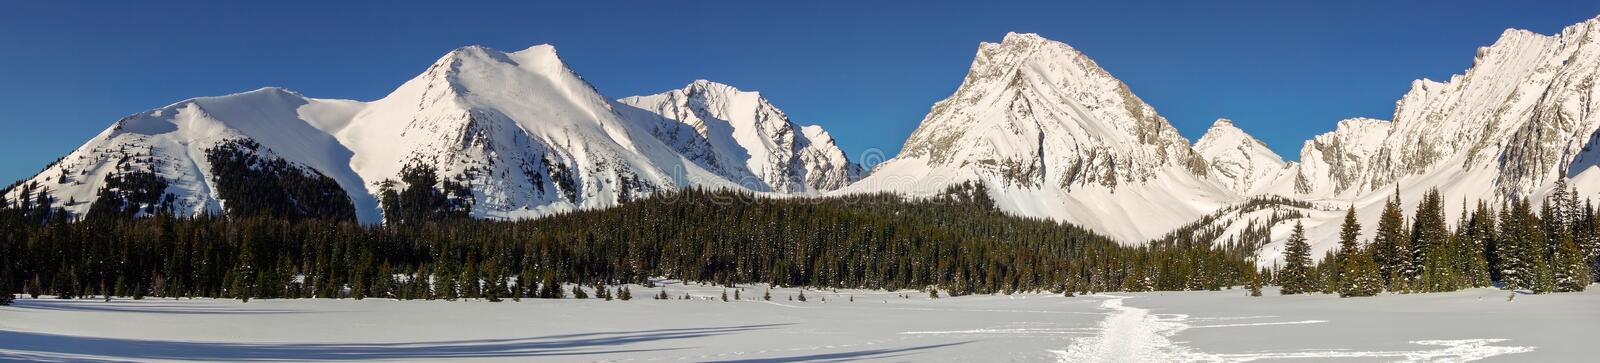 Snowy Mountain Peaks Panoramic Landscape Cold Winter Kananaskis Alberta Canada. Wide Panoramic Landscape of Snowy Mountain Peaks Snowshoeing on a cold Winter Day royalty free stock photos